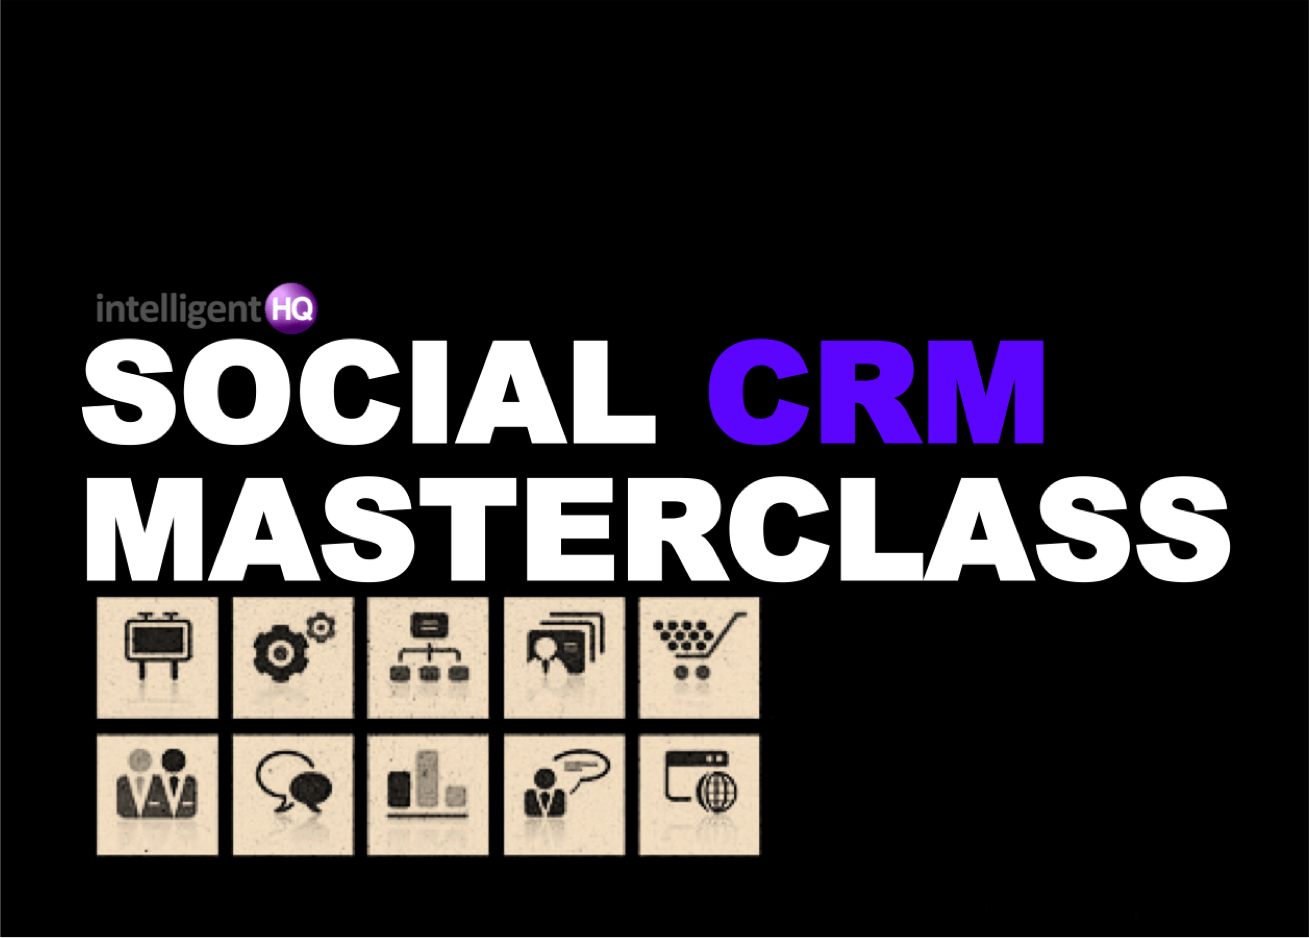 Social CRM masterclass by IntelligentHQ